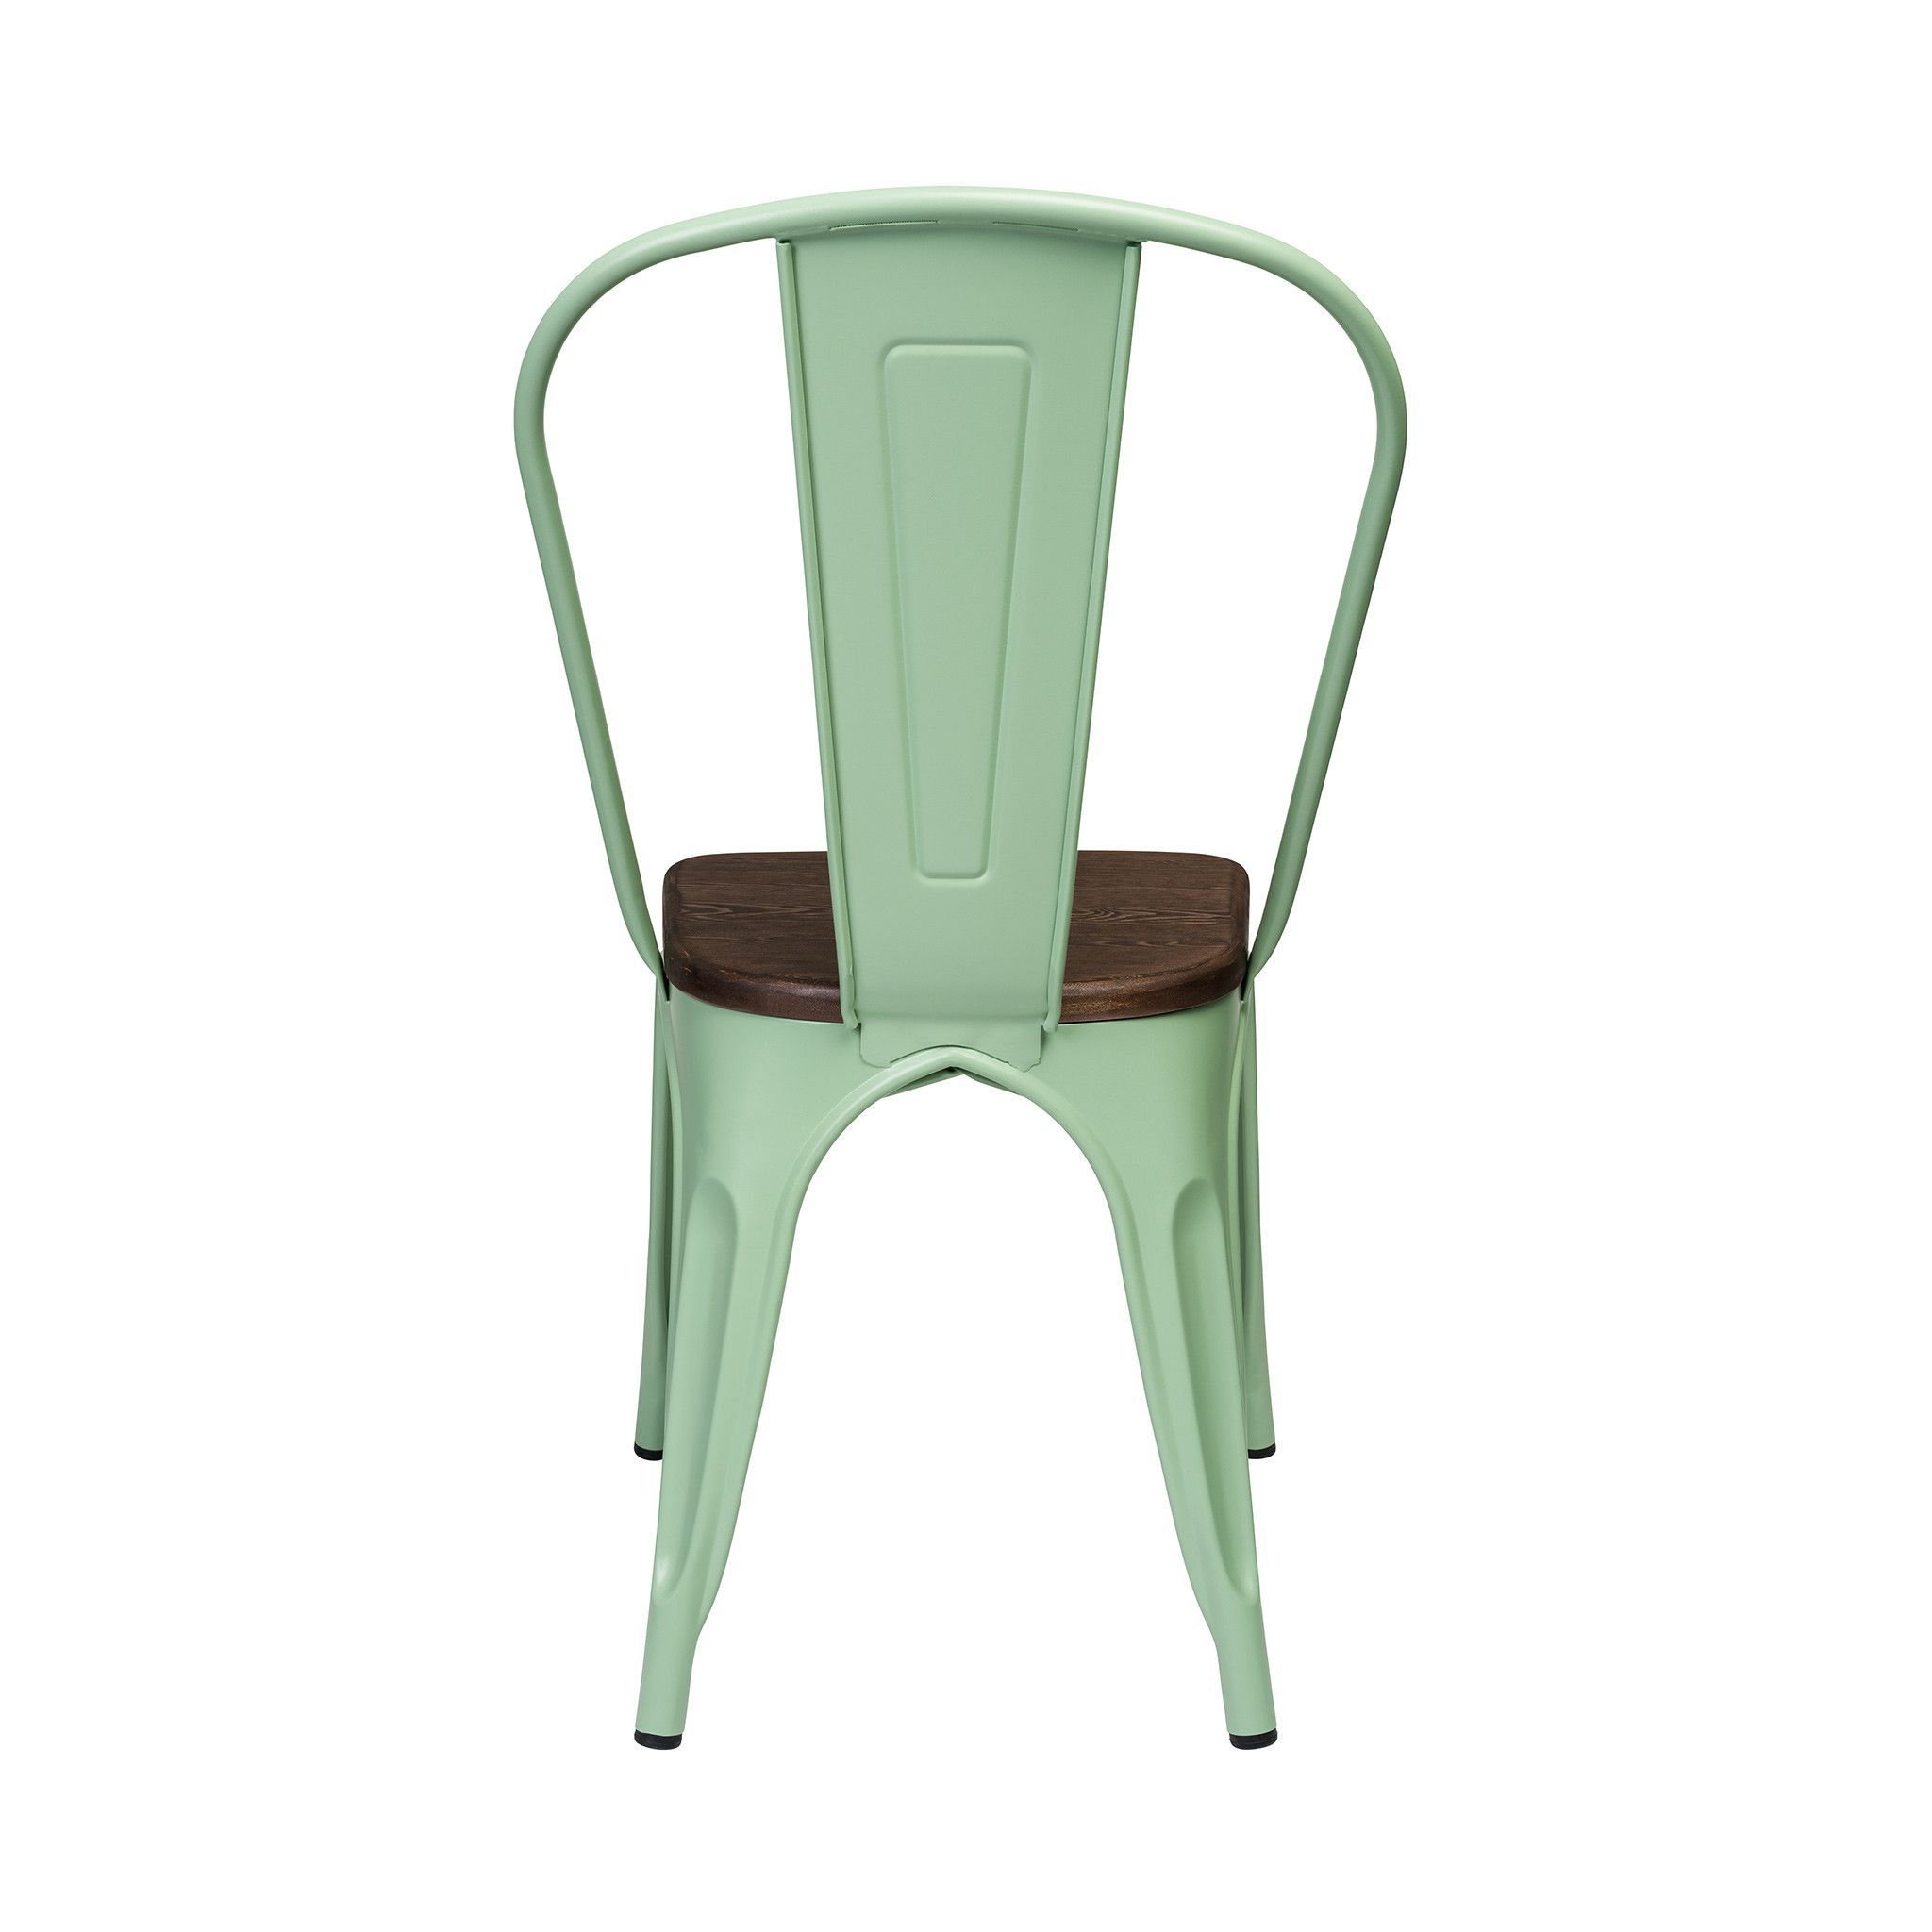 chairs product style tolix side chair